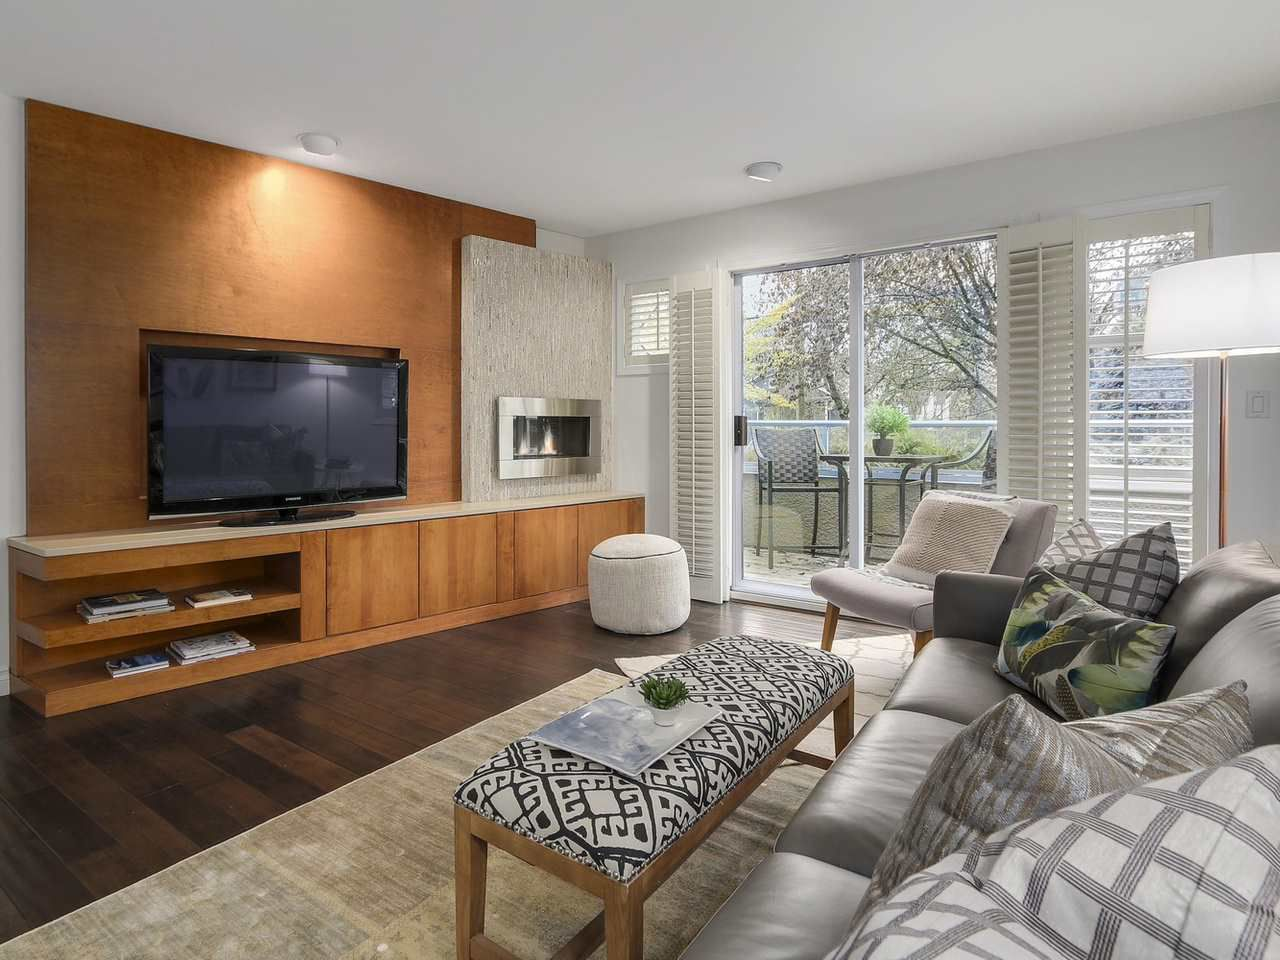 Main Photo: 2863 W 6TH AVENUE in Vancouver: Kitsilano House 1/2 Duplex for sale (Vancouver West)  : MLS®# R2138450